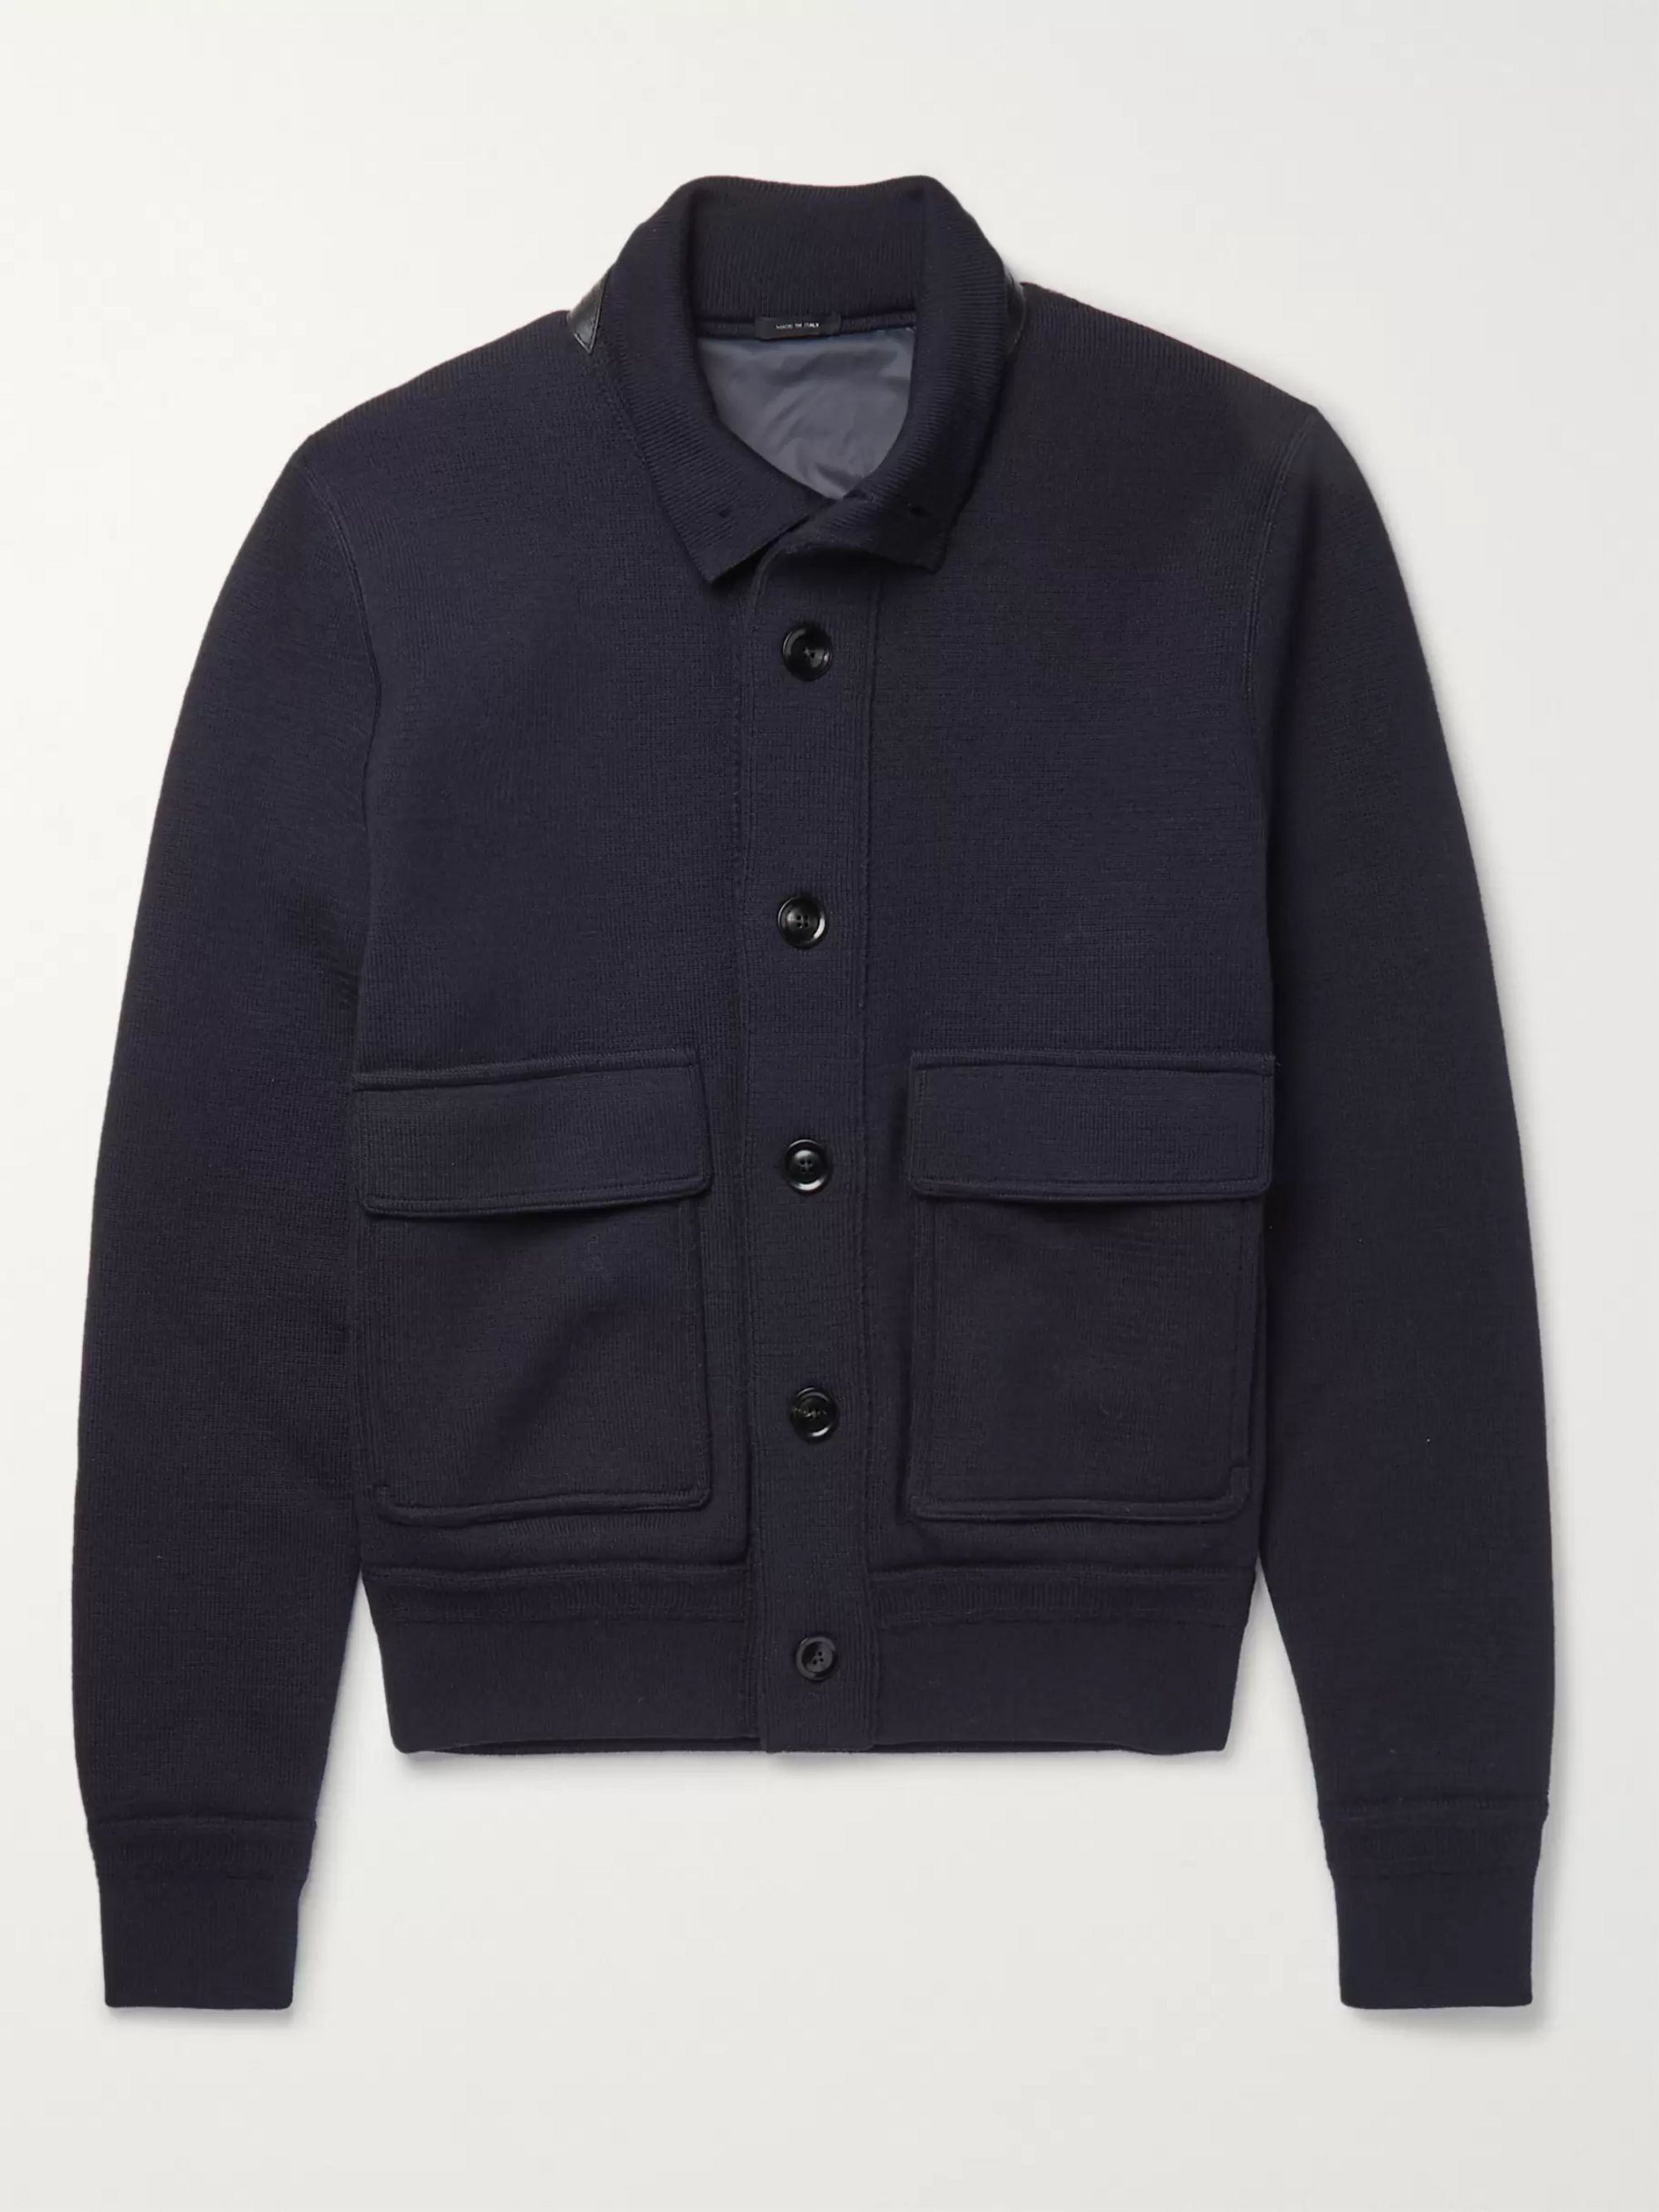 TOM FORD Wool Bomber Jacket